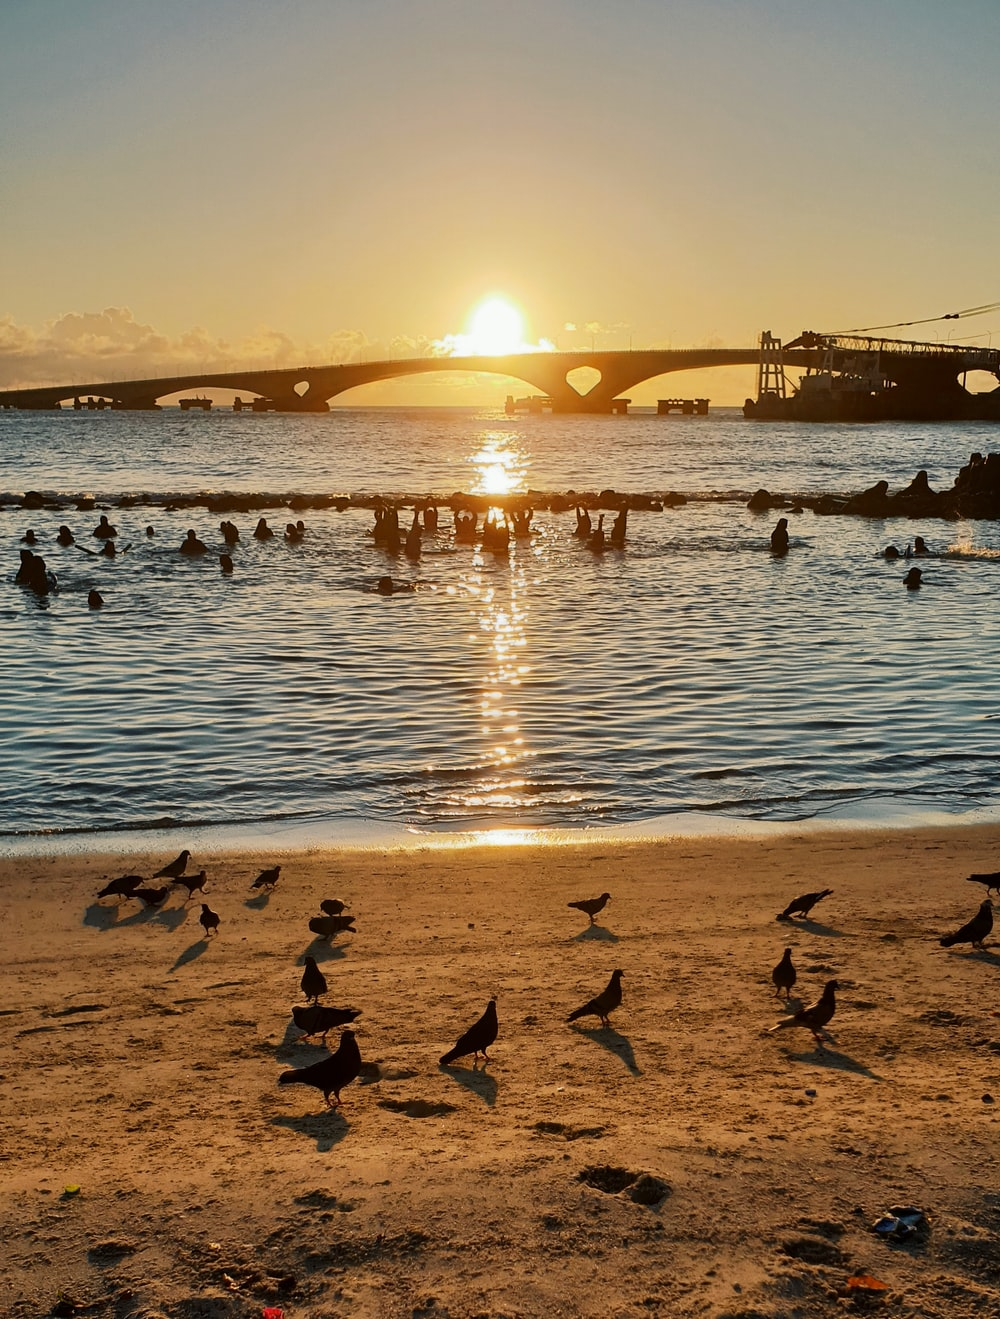 people swimming at the beach beside birds on sand dunes during sunset